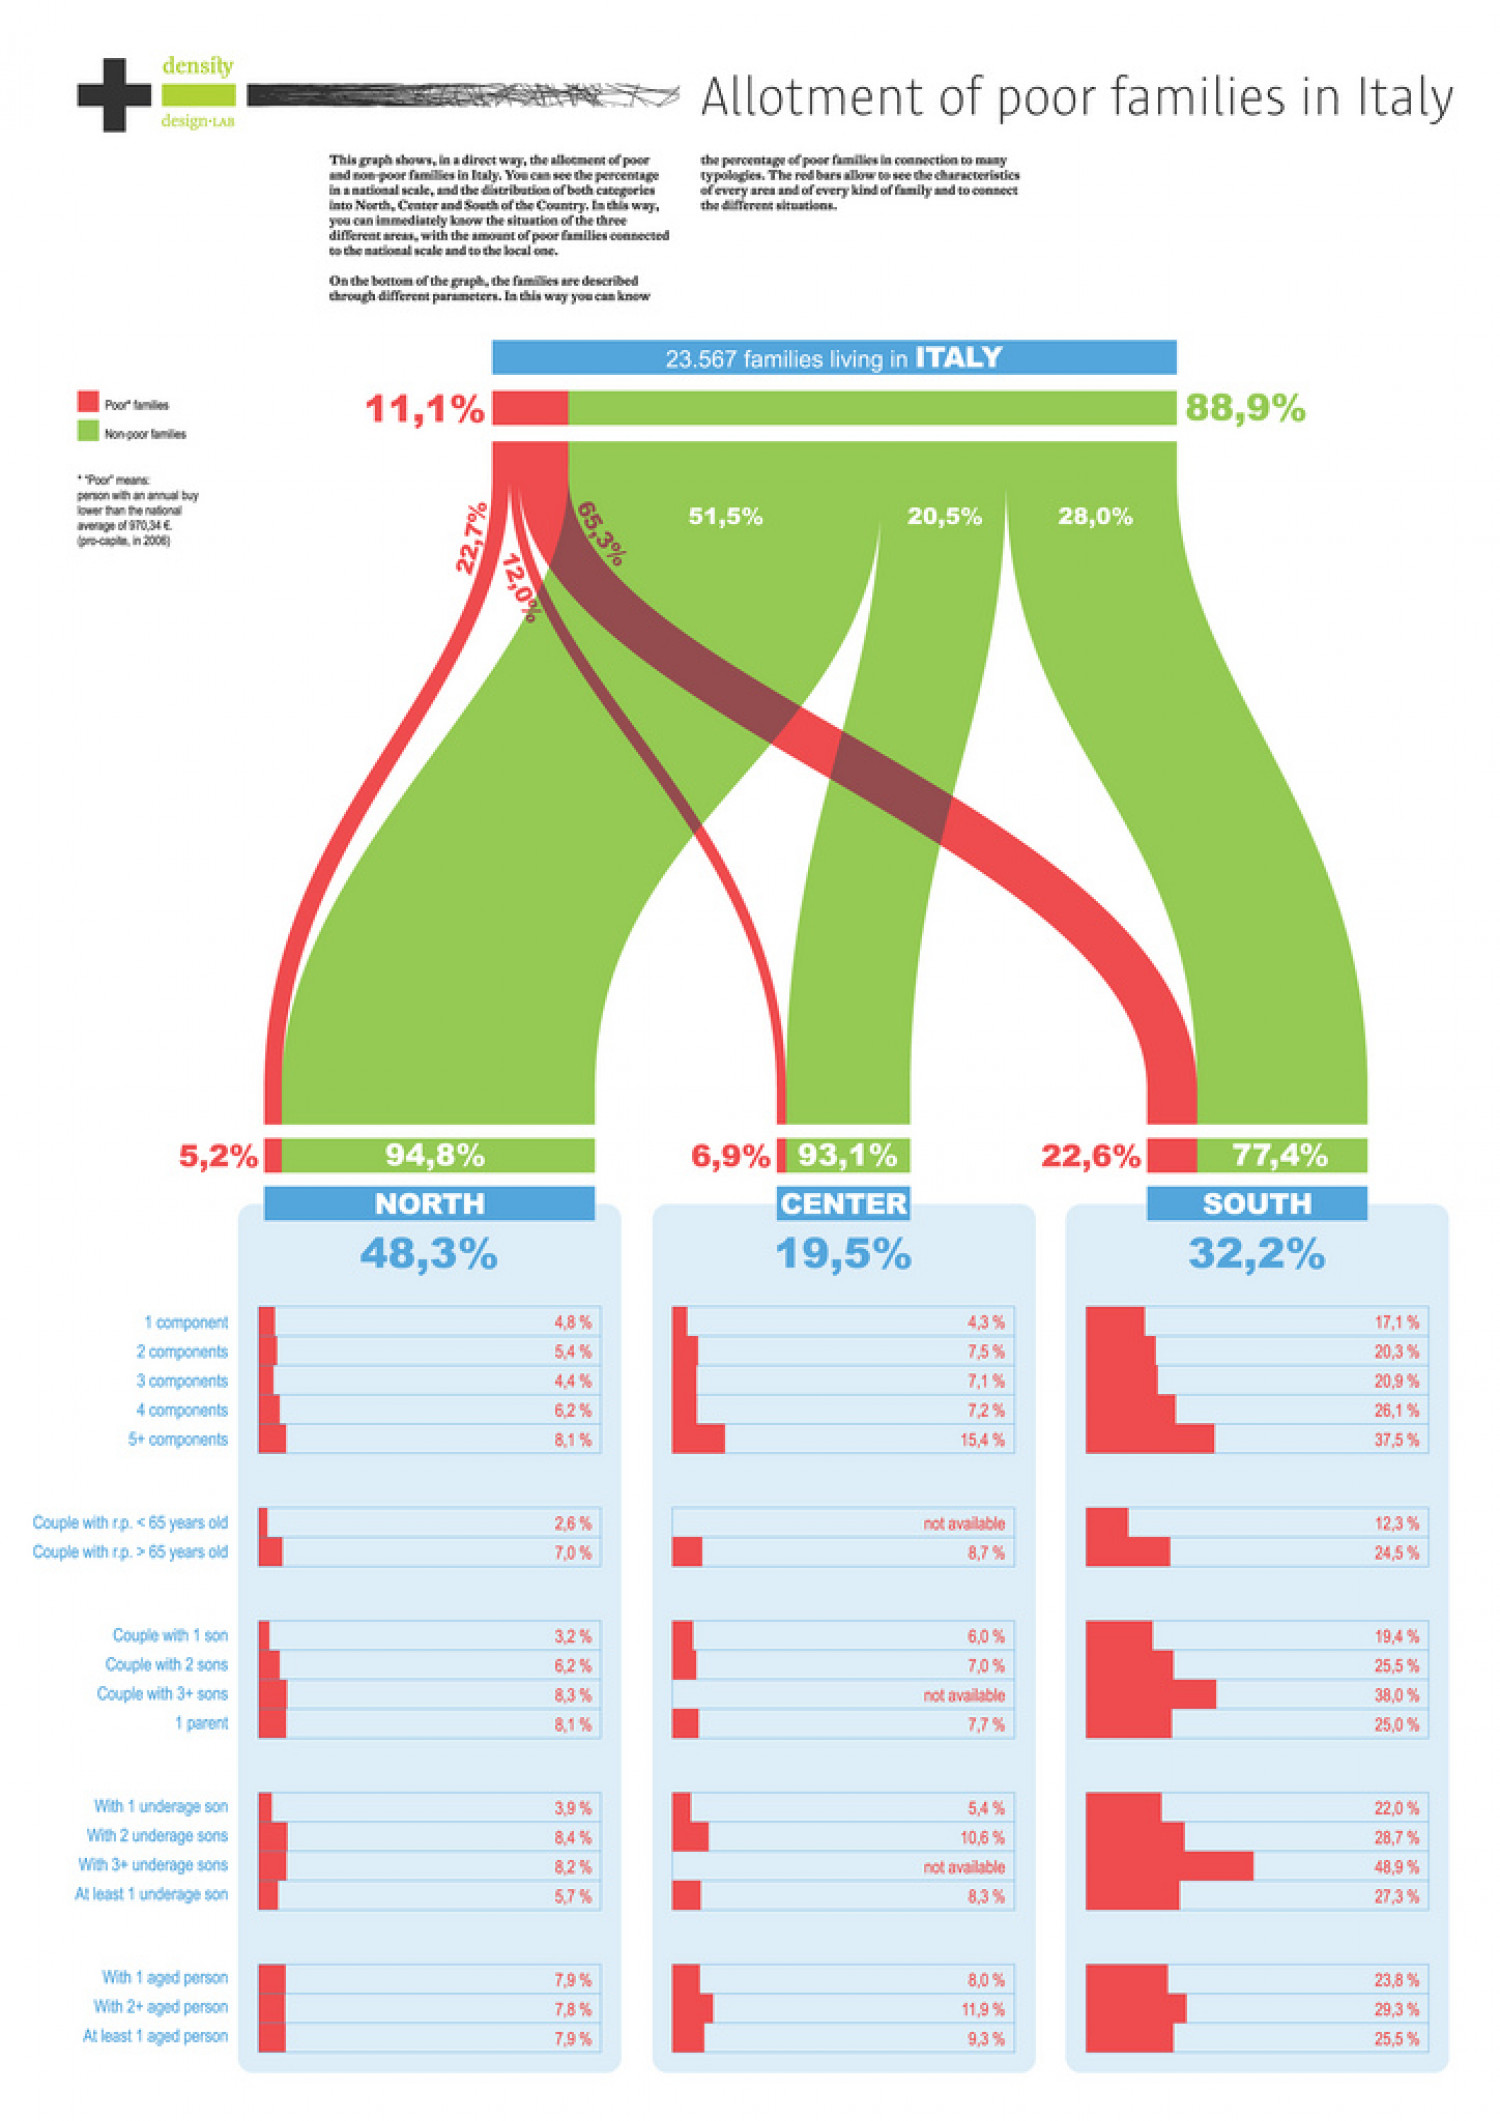 Allotment of Poor Families in Italy Infographic